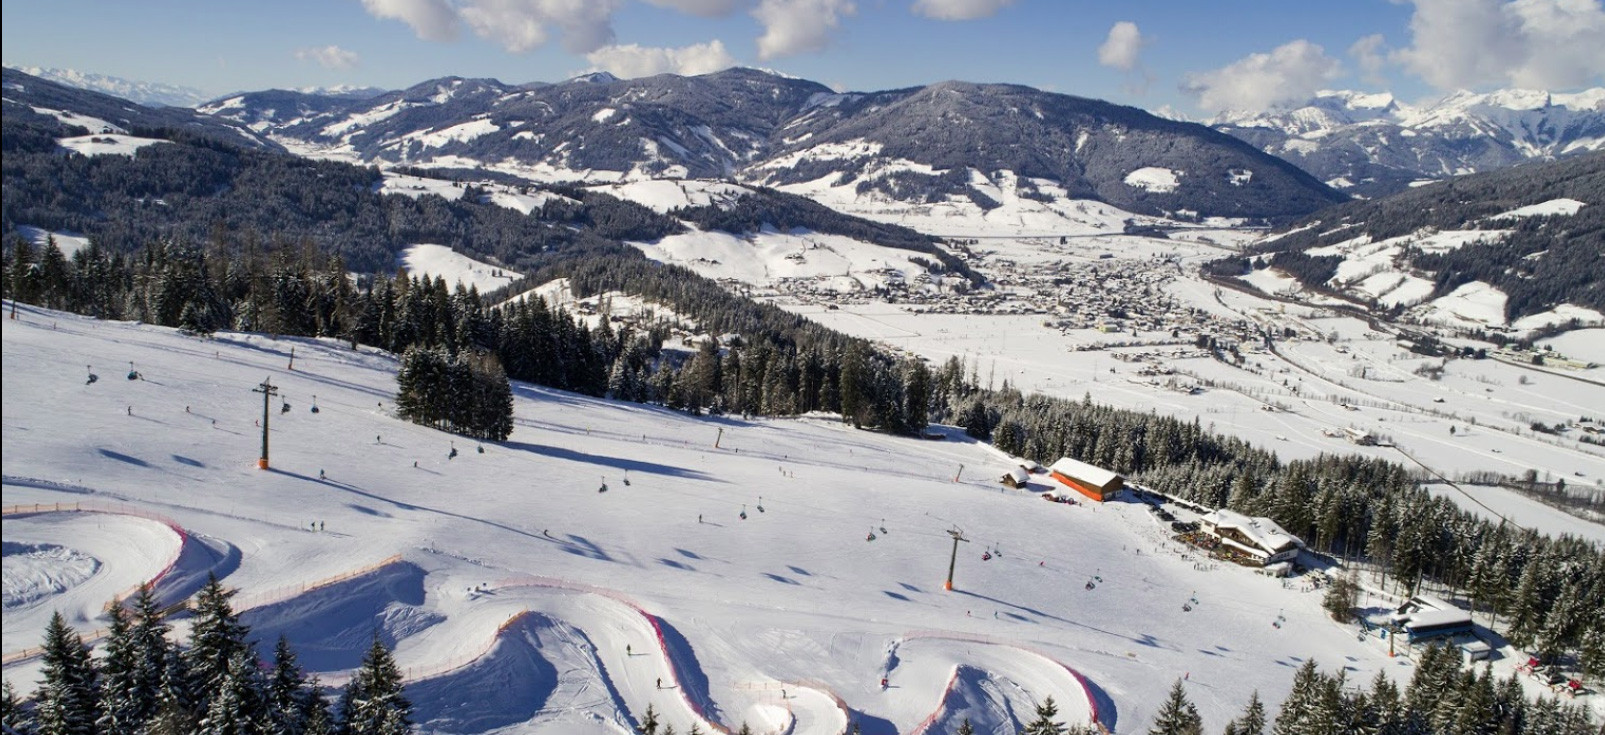 Ski resort Radstadt-Altenmarkt